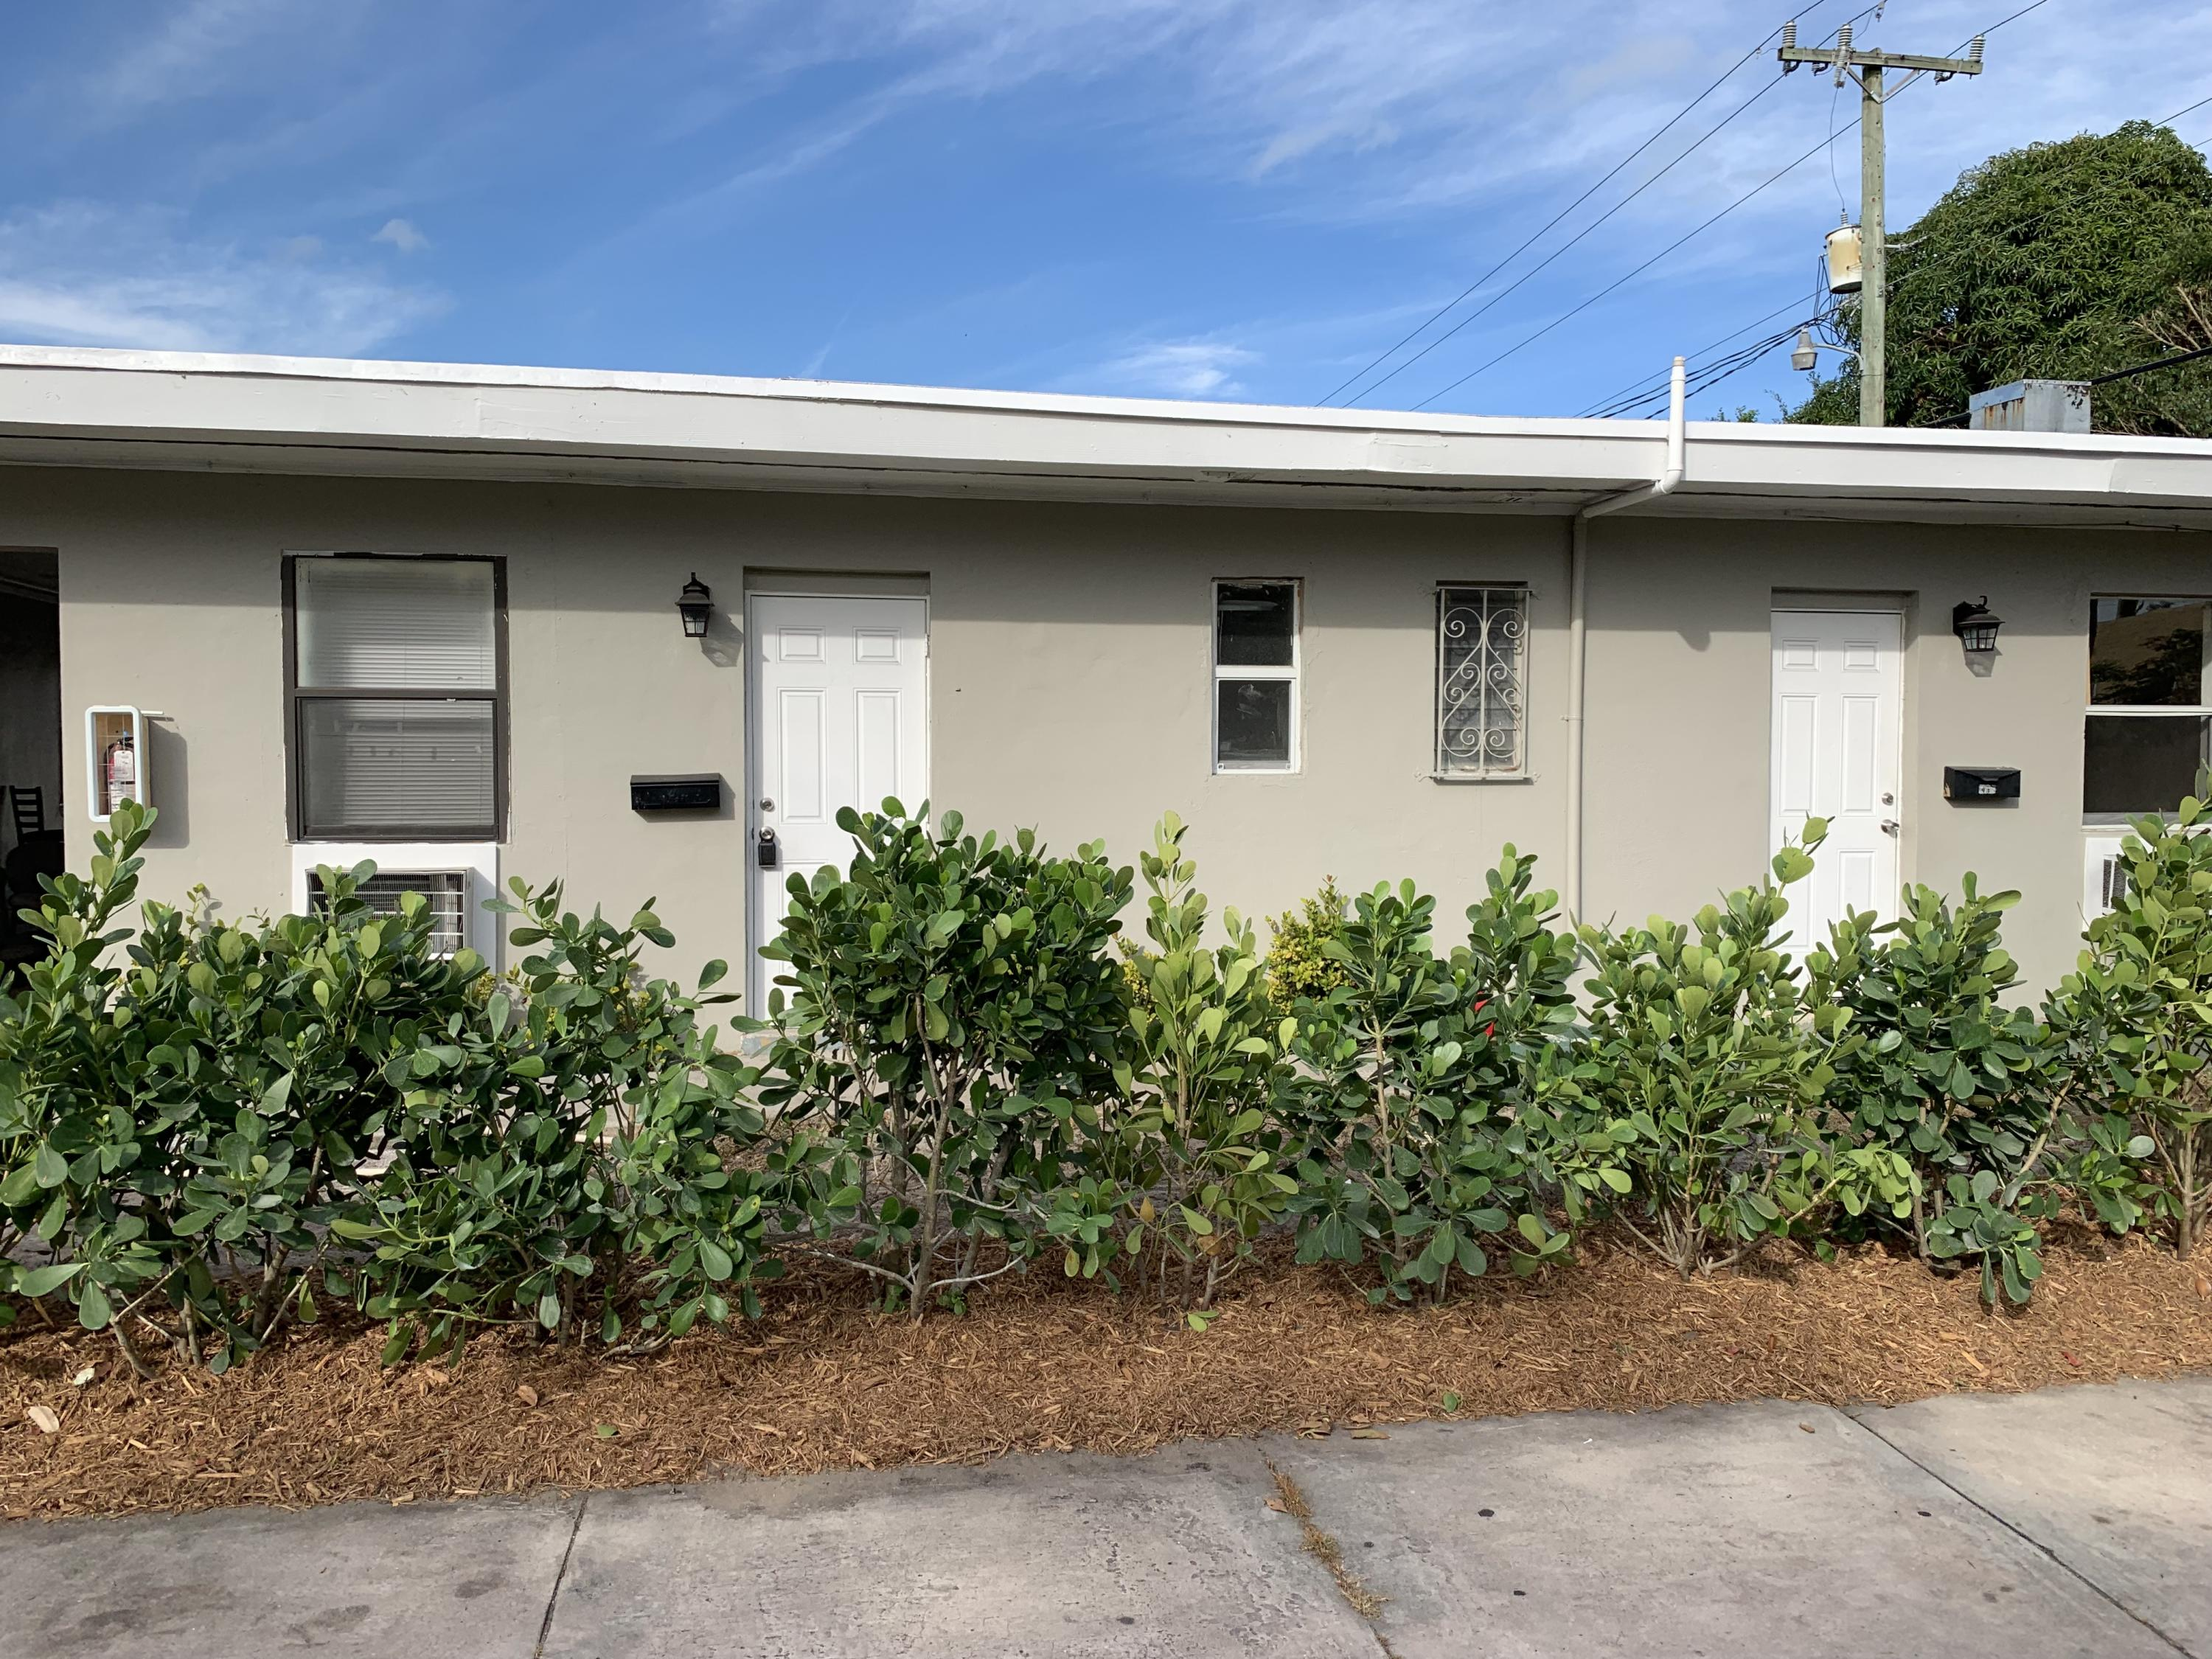 3300 Broadway Avenue, West Palm Beach, Florida 33407, 1 Bedroom Bedrooms, ,1 BathroomBathrooms,Apartment,For Rent,Broadway,1,RX-10501681